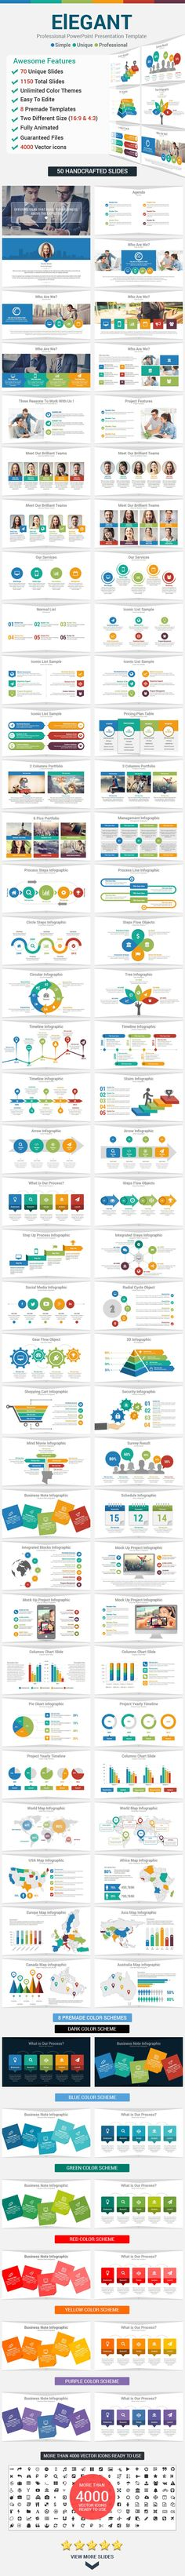 Data Charts  Powerpoint Presentation Template  More Data Charts